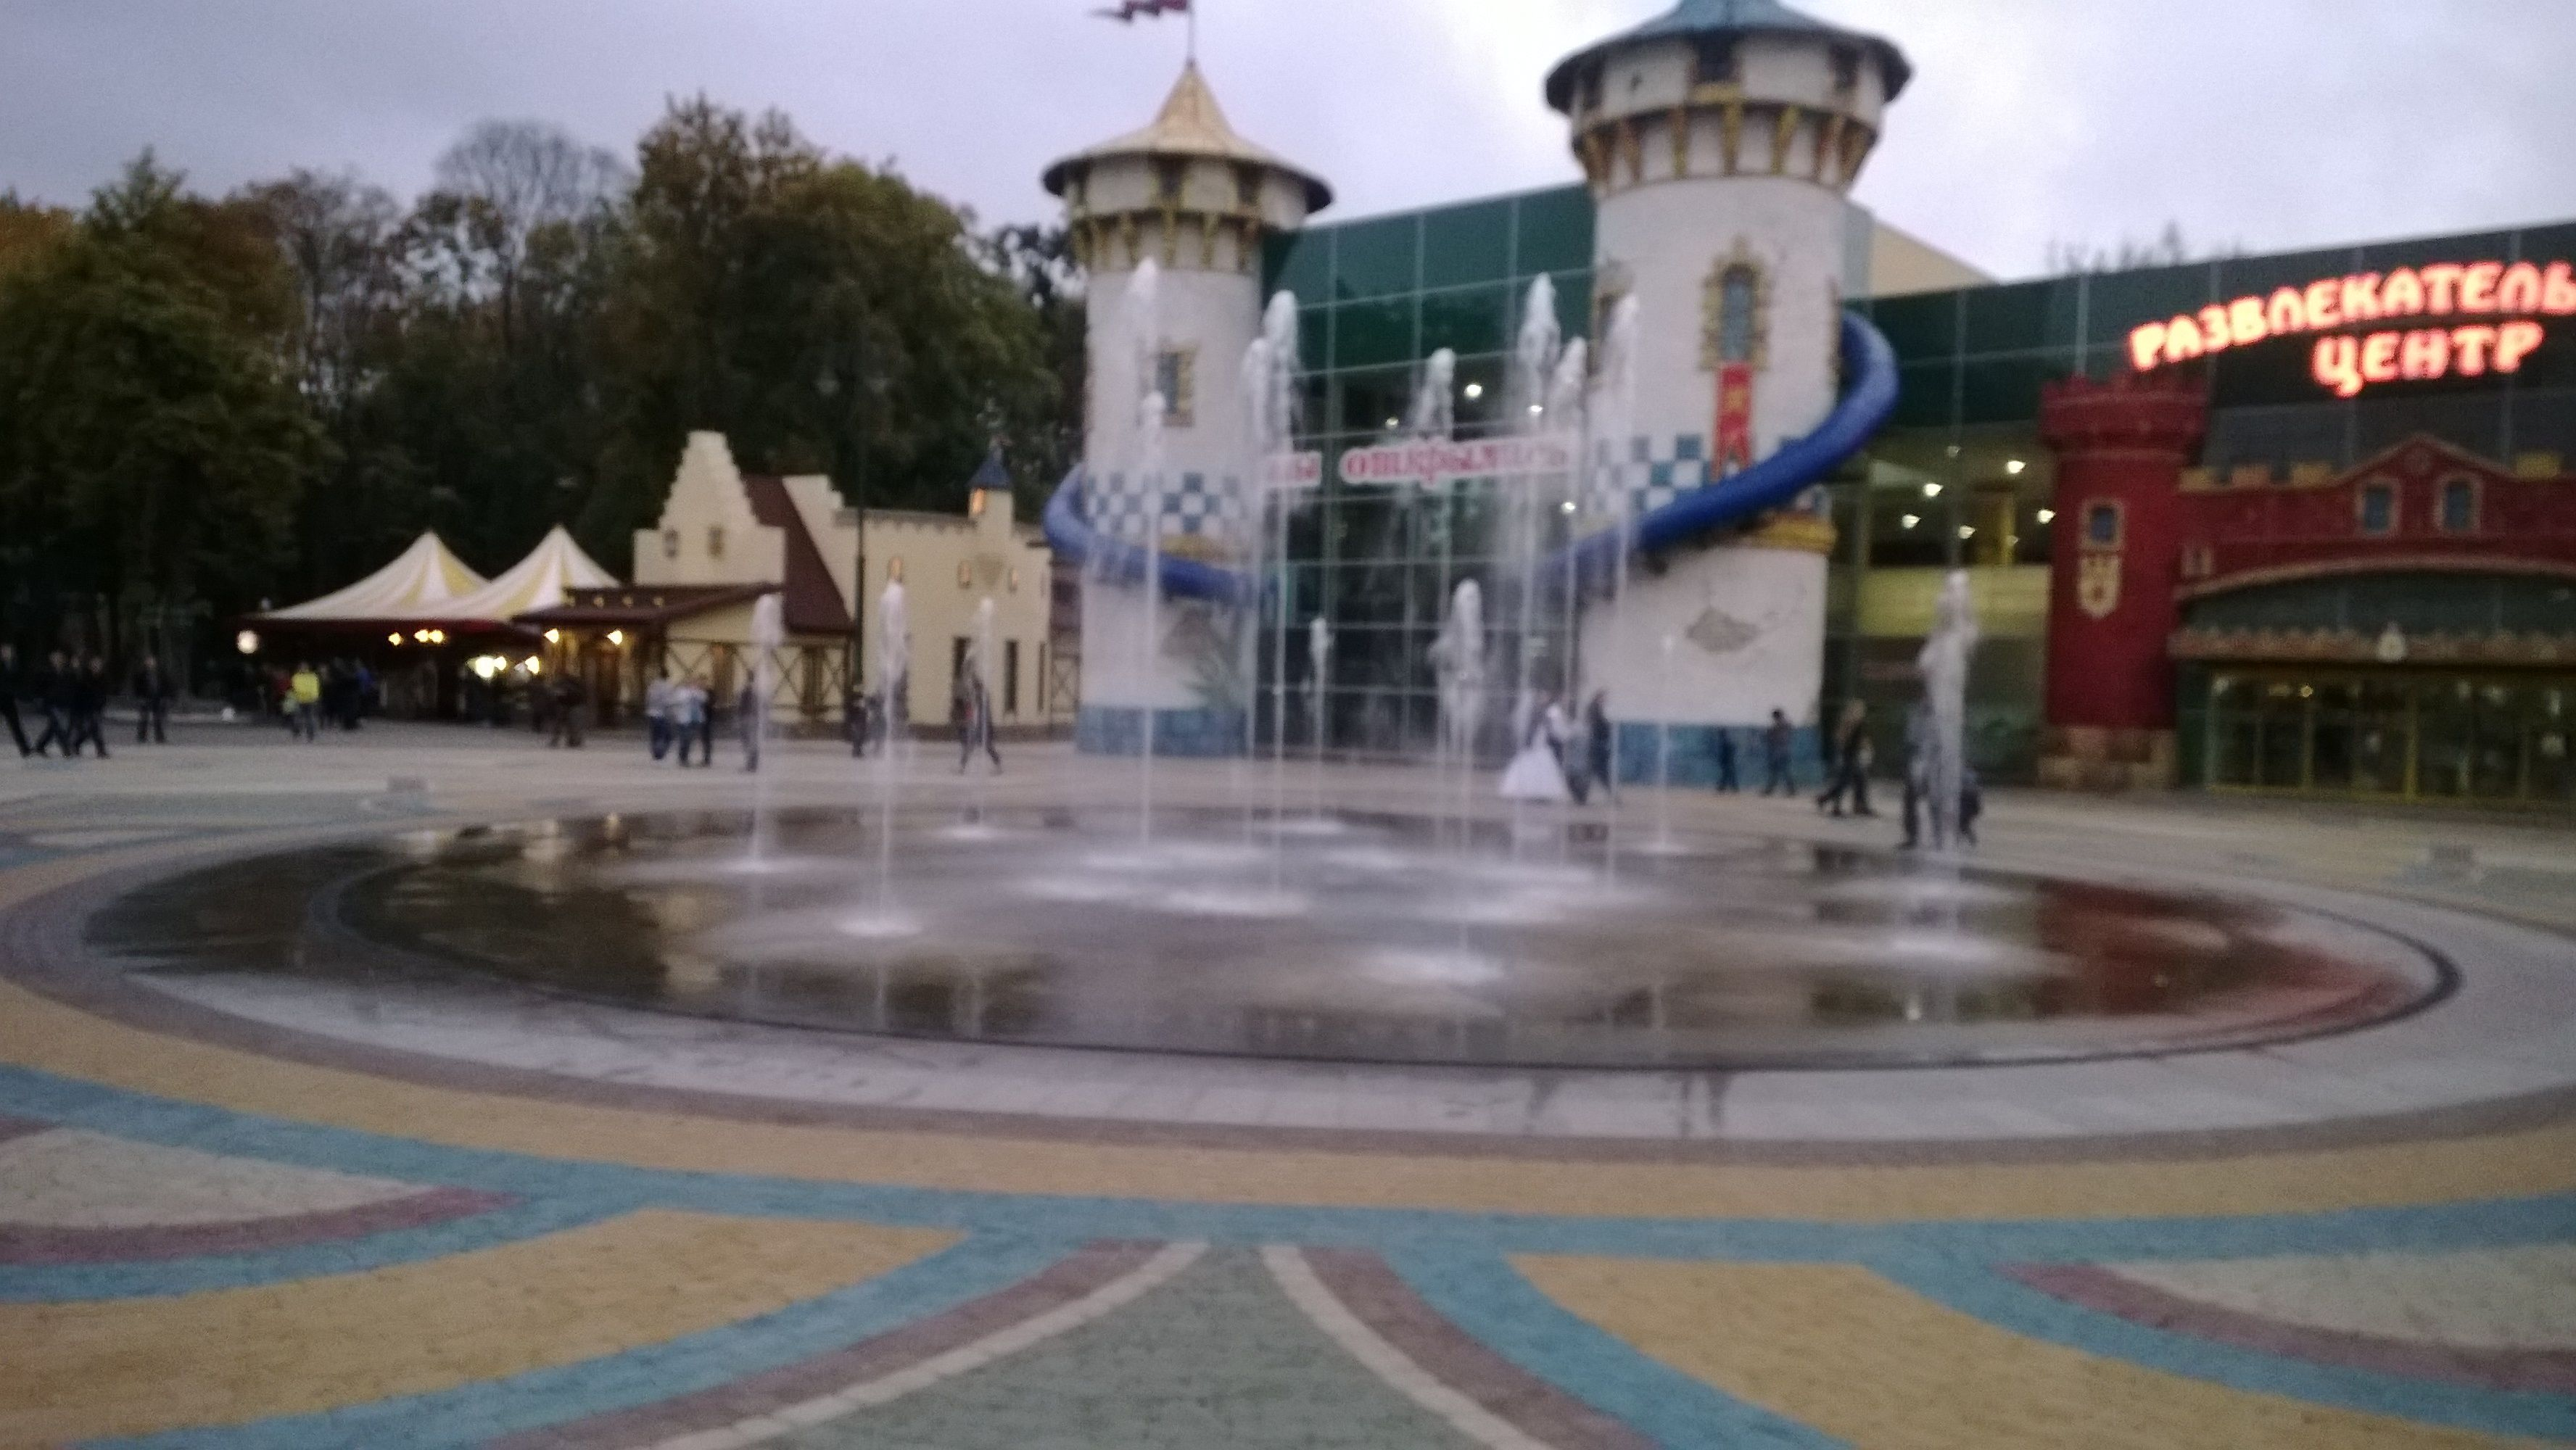 The amusement park - ground level.